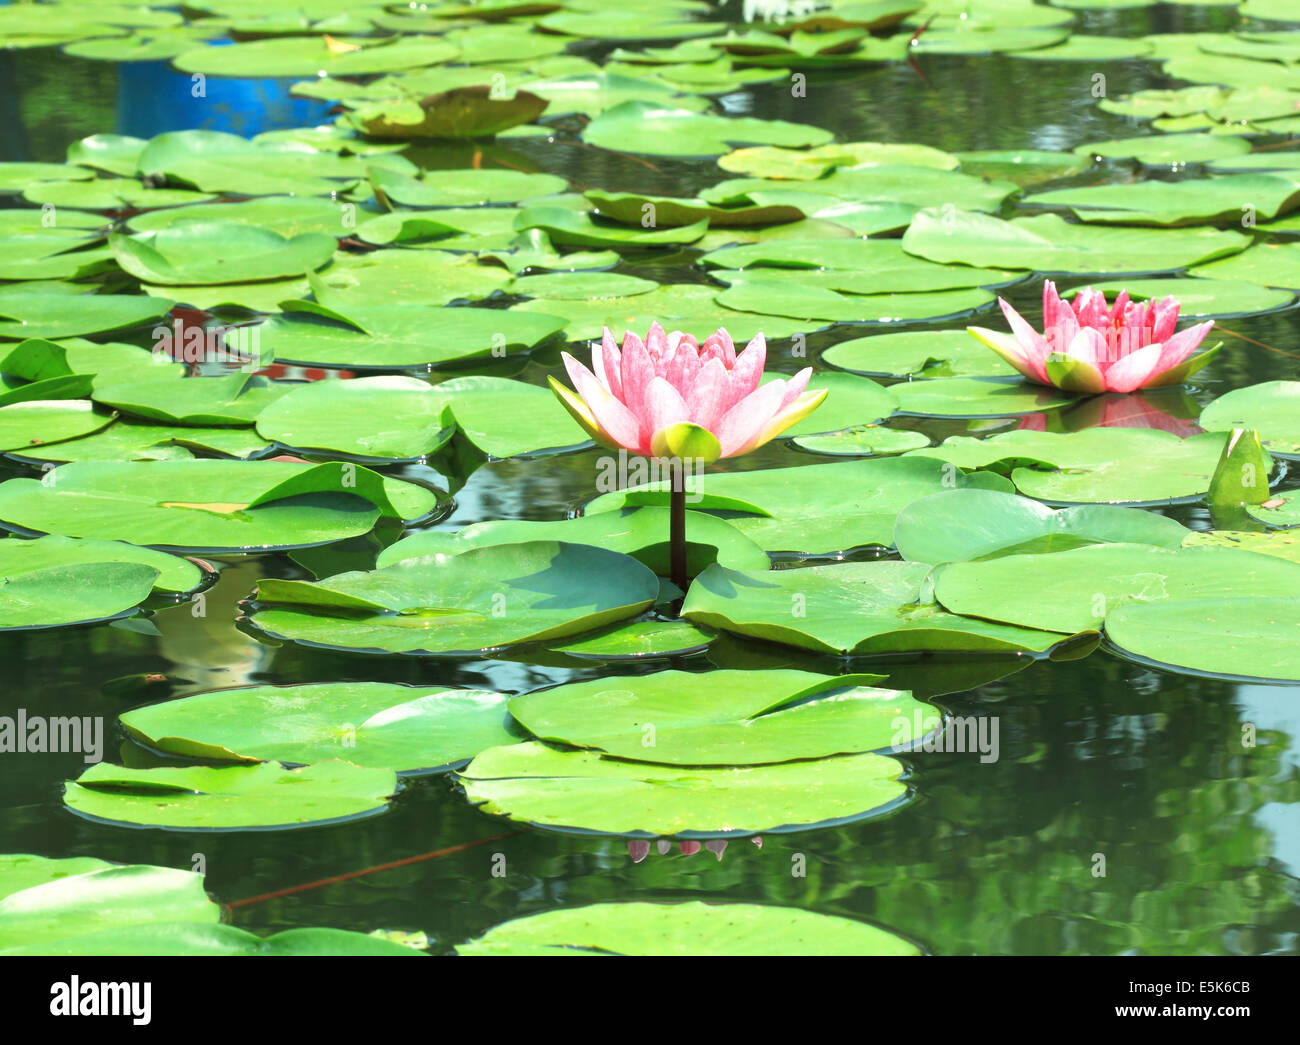 Lotus flower plants in the water. Natural background Stock Photo